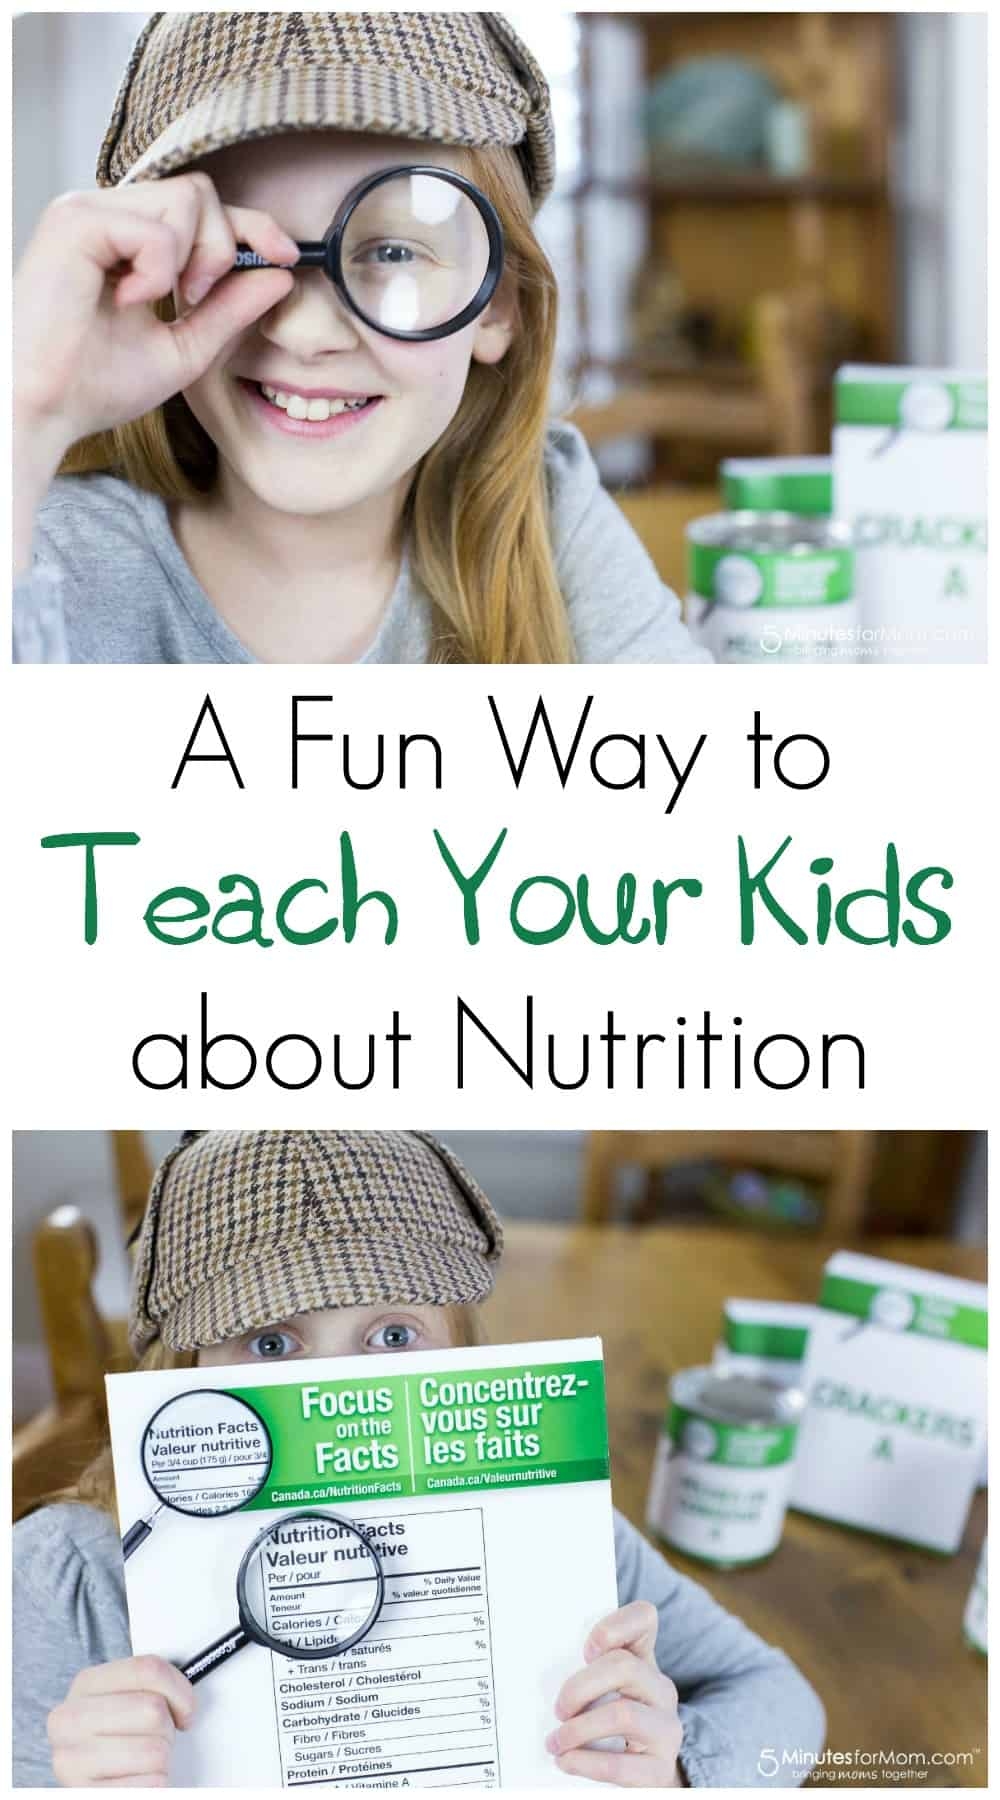 A Fun Way to Teach Your Kids About Nutrition